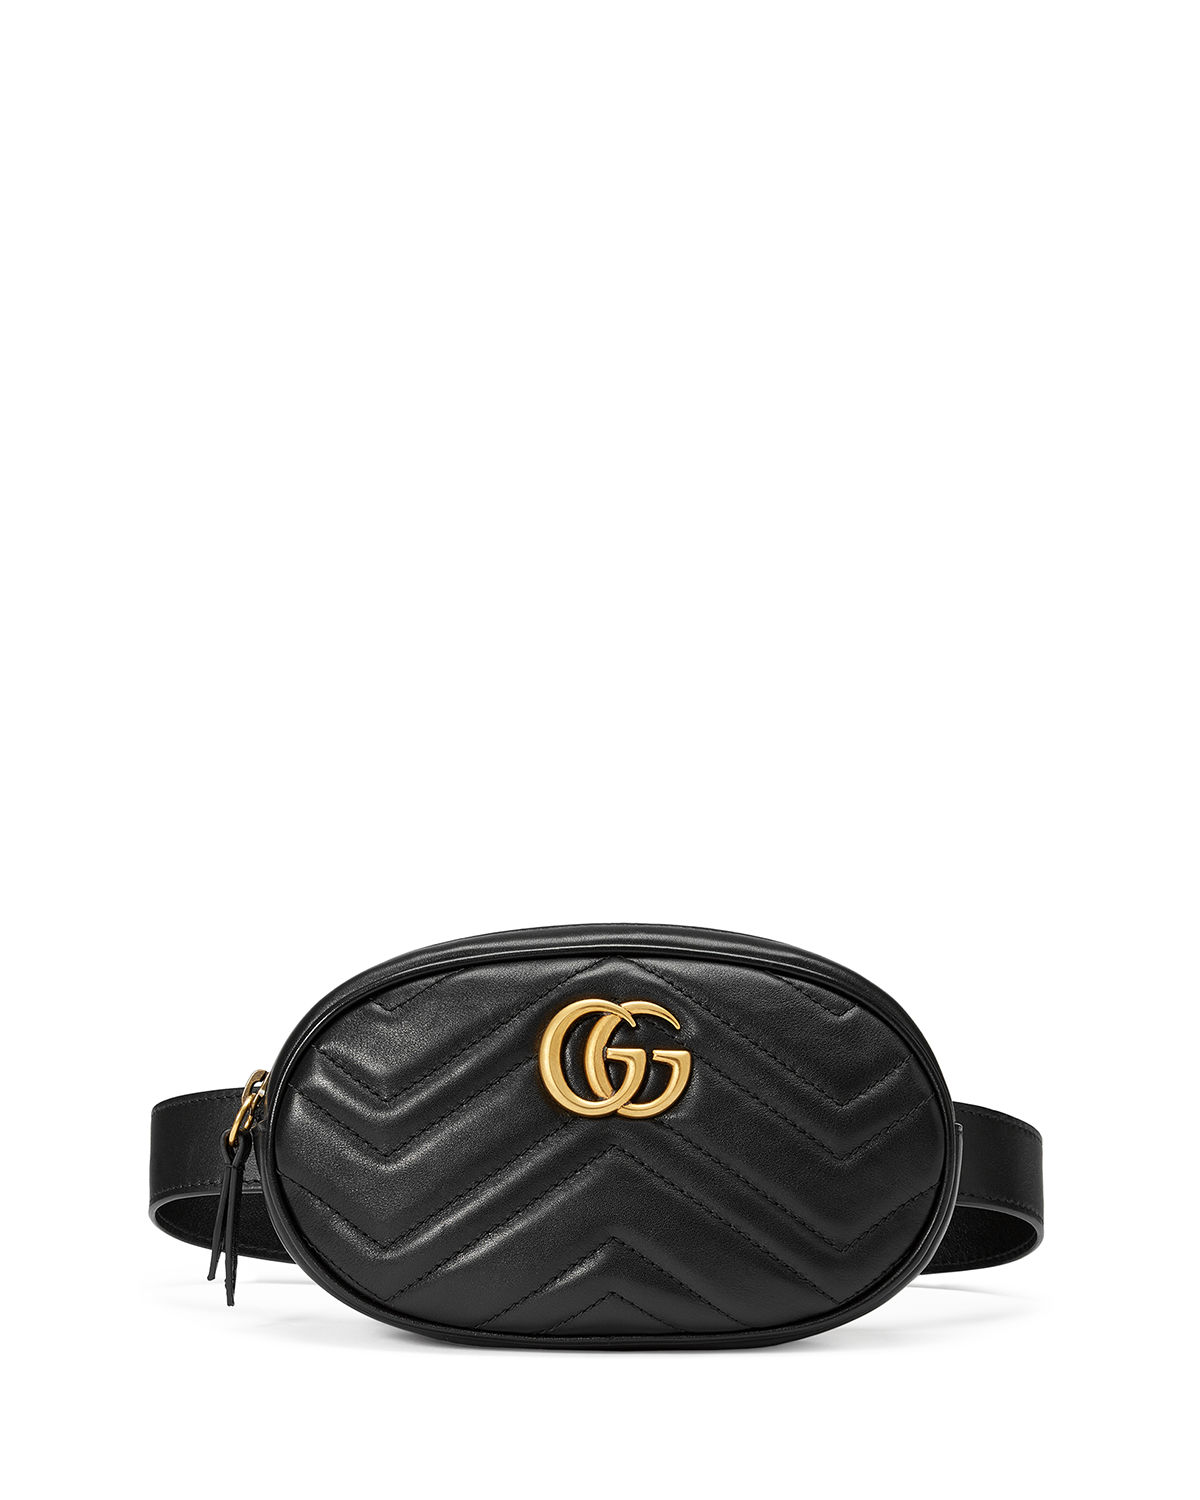 b4f24c35c0a9 Gucci GG Marmont Small Matelasse Leather Belt Bag | Neiman Marcus